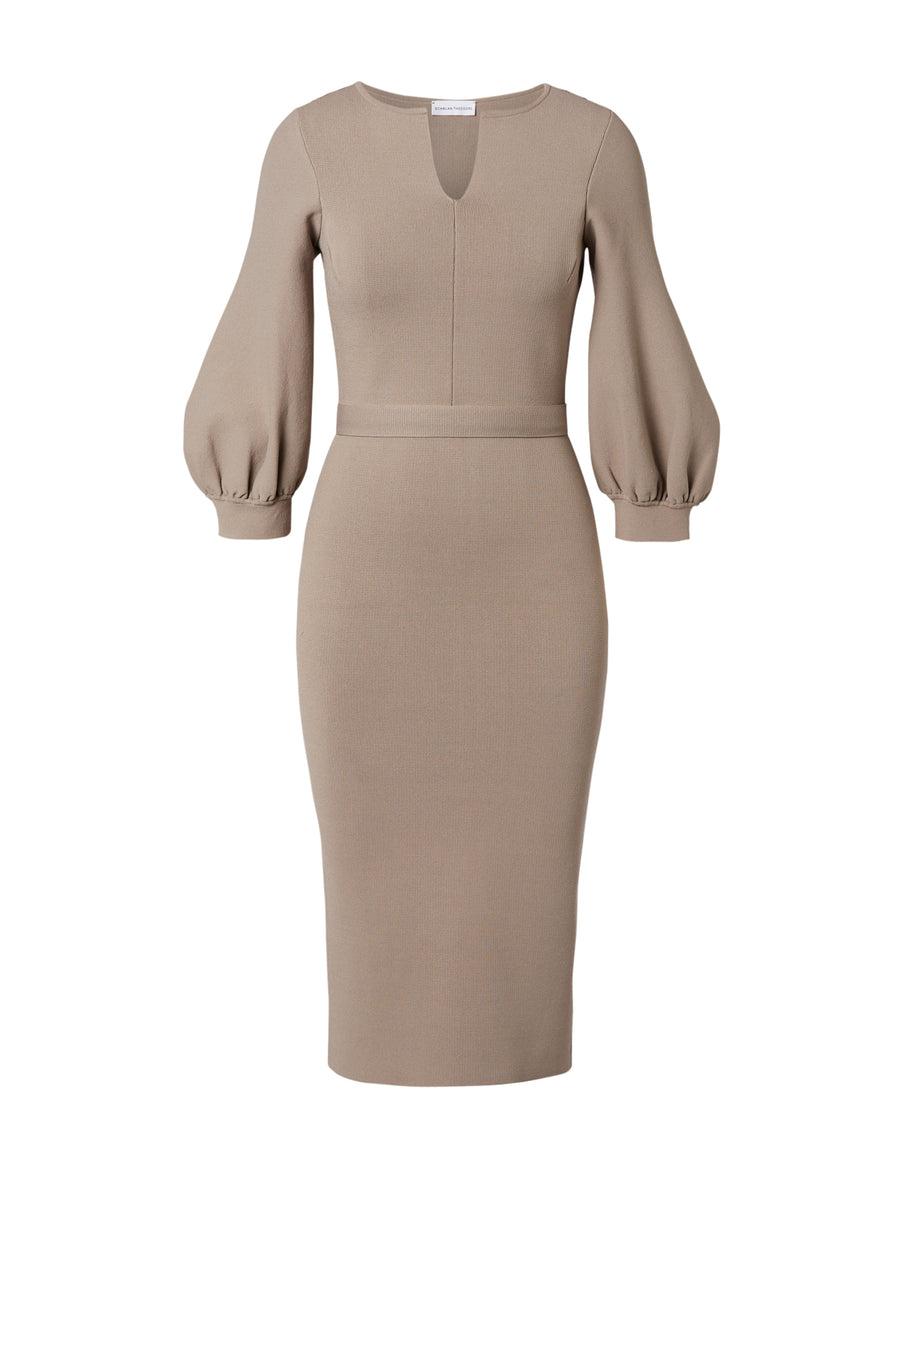 CREPE KNIT COCOON SLV DRESS CLAY